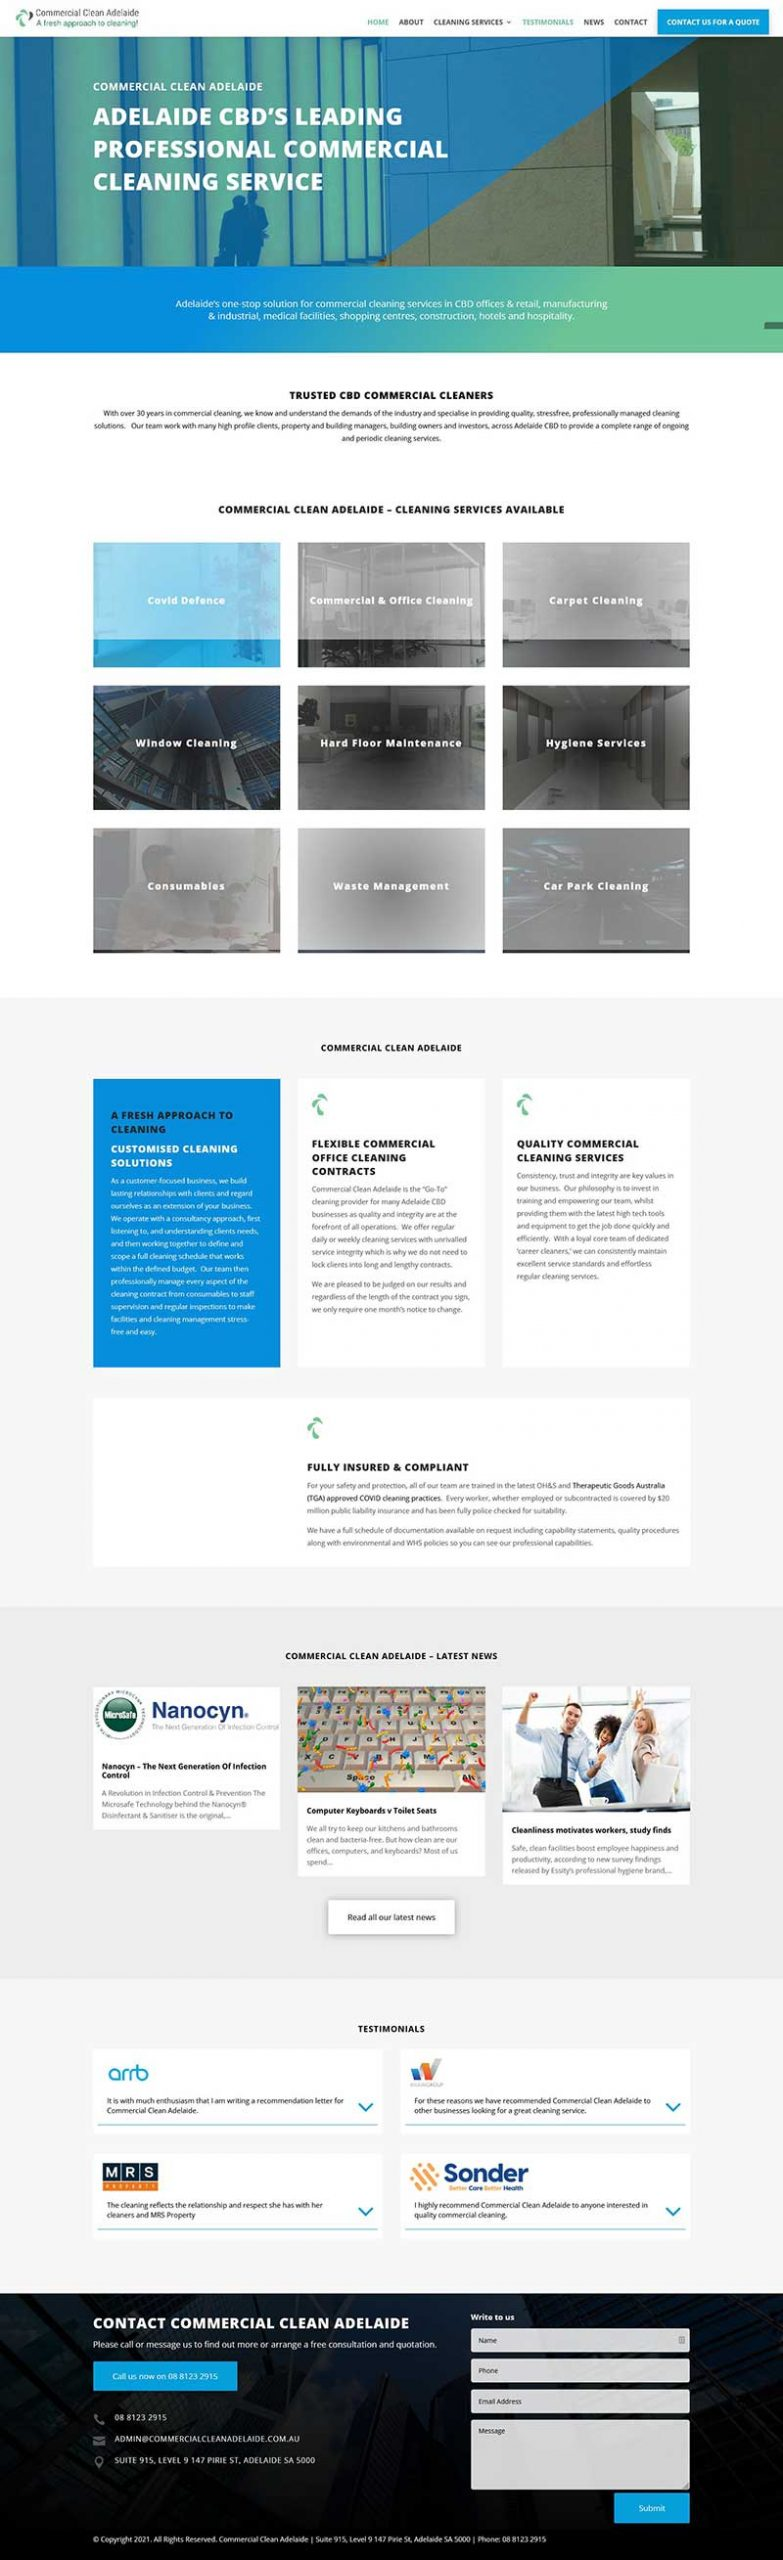 website design in adelaide for commercial cleaning business